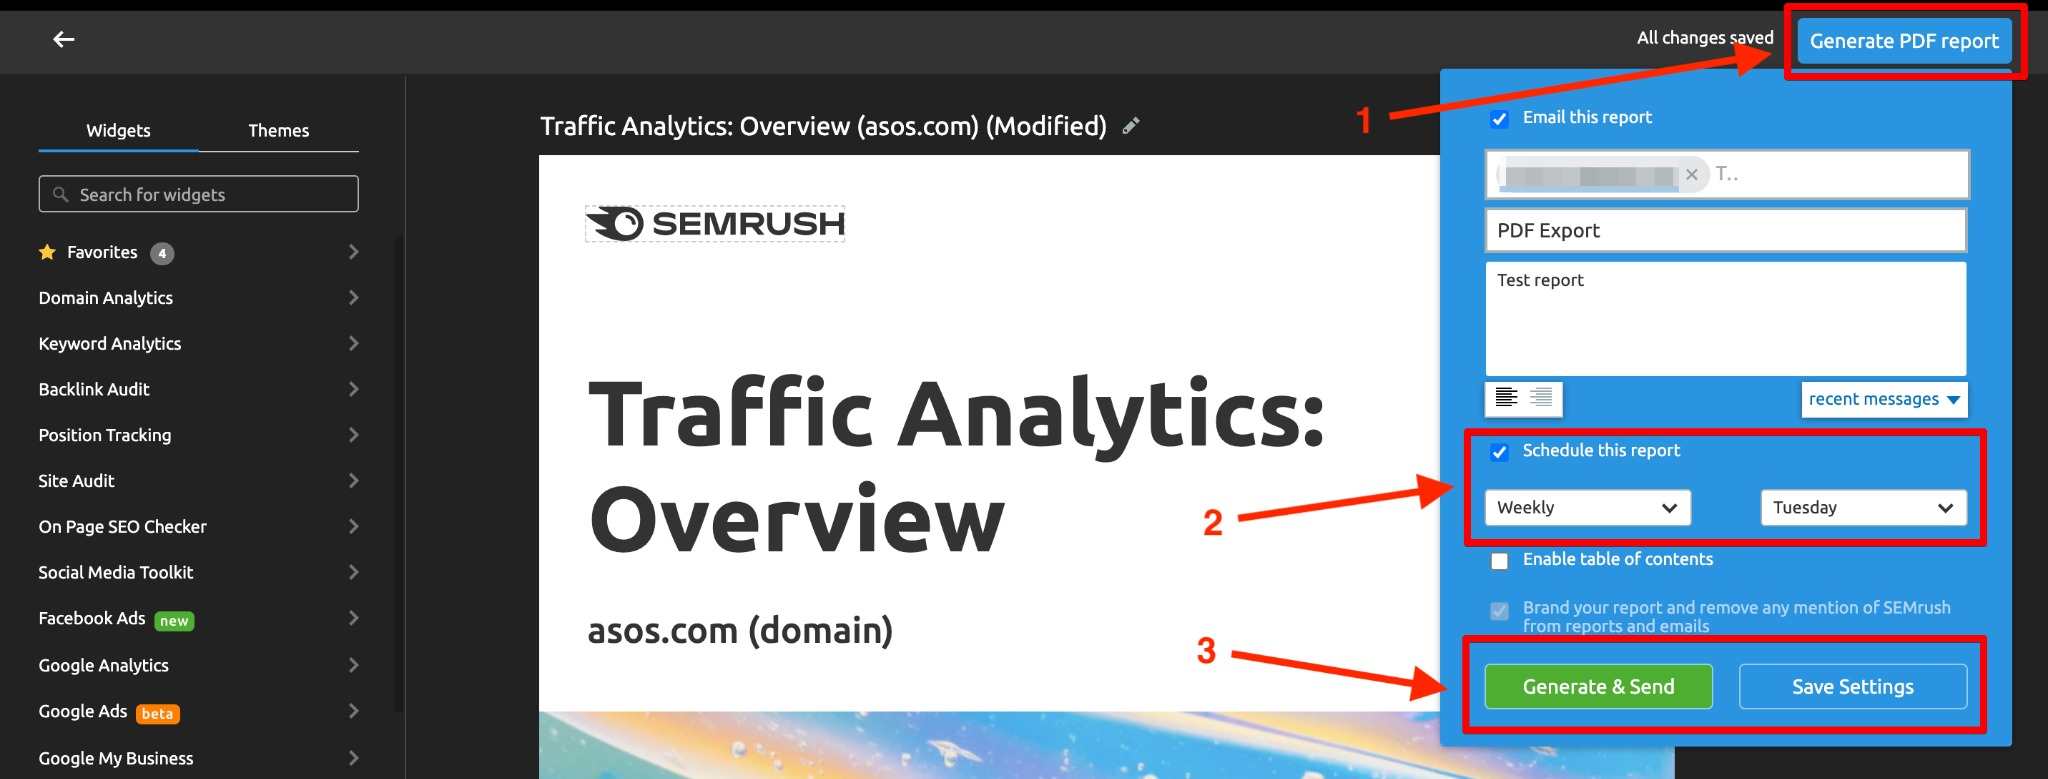 Report Automation with Semrush image 4